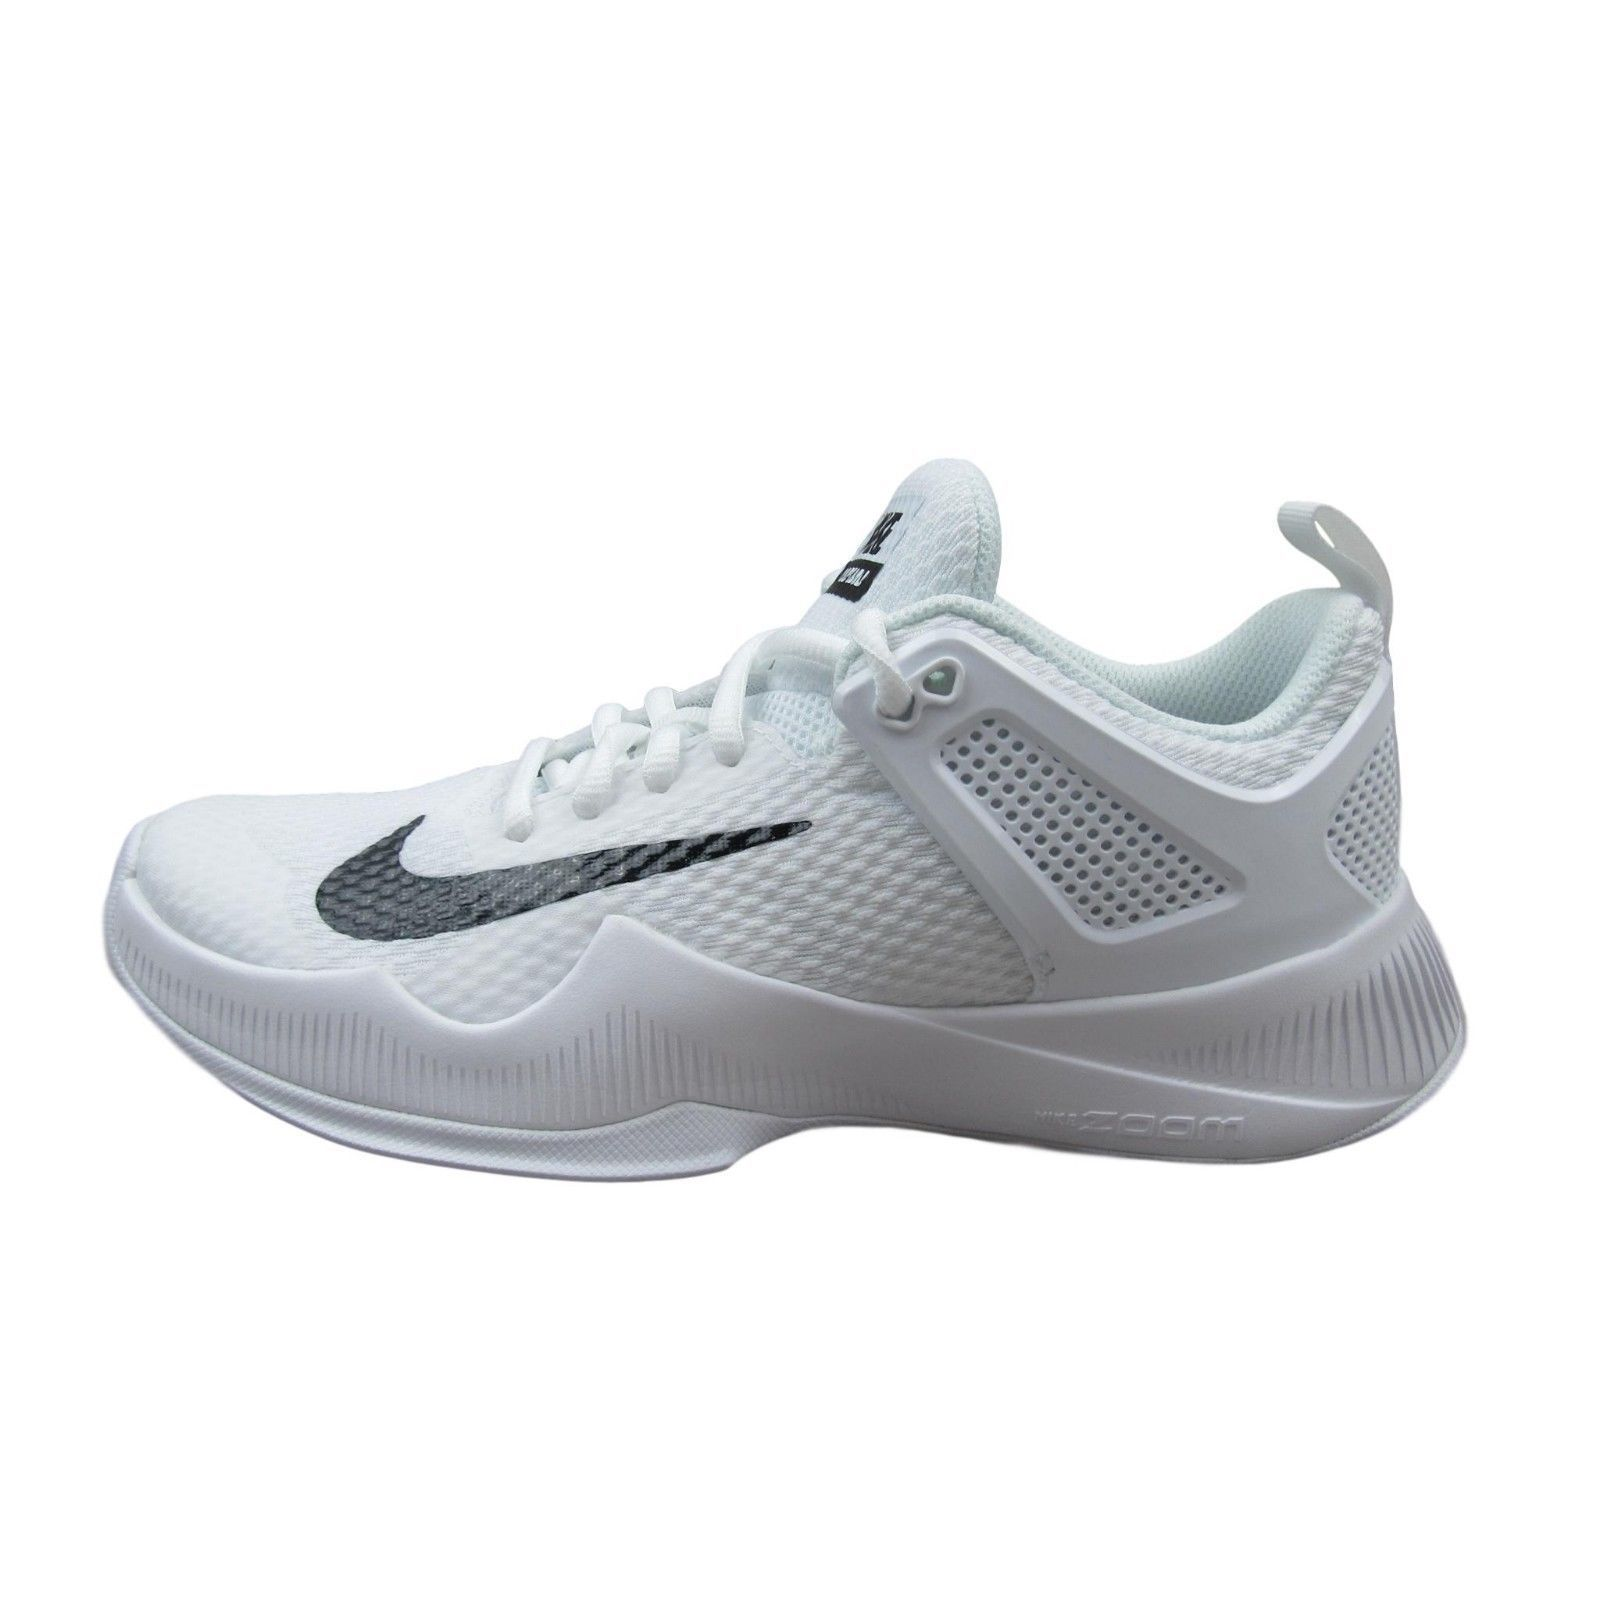 Nike Air Zoom Hyperace Volleyball Shoes Womens 902367 100 White Multiple Size Ebay Nike Nikevolley Volleyball Shoes Nike Volleyball Shoes Nike Shoes Girls